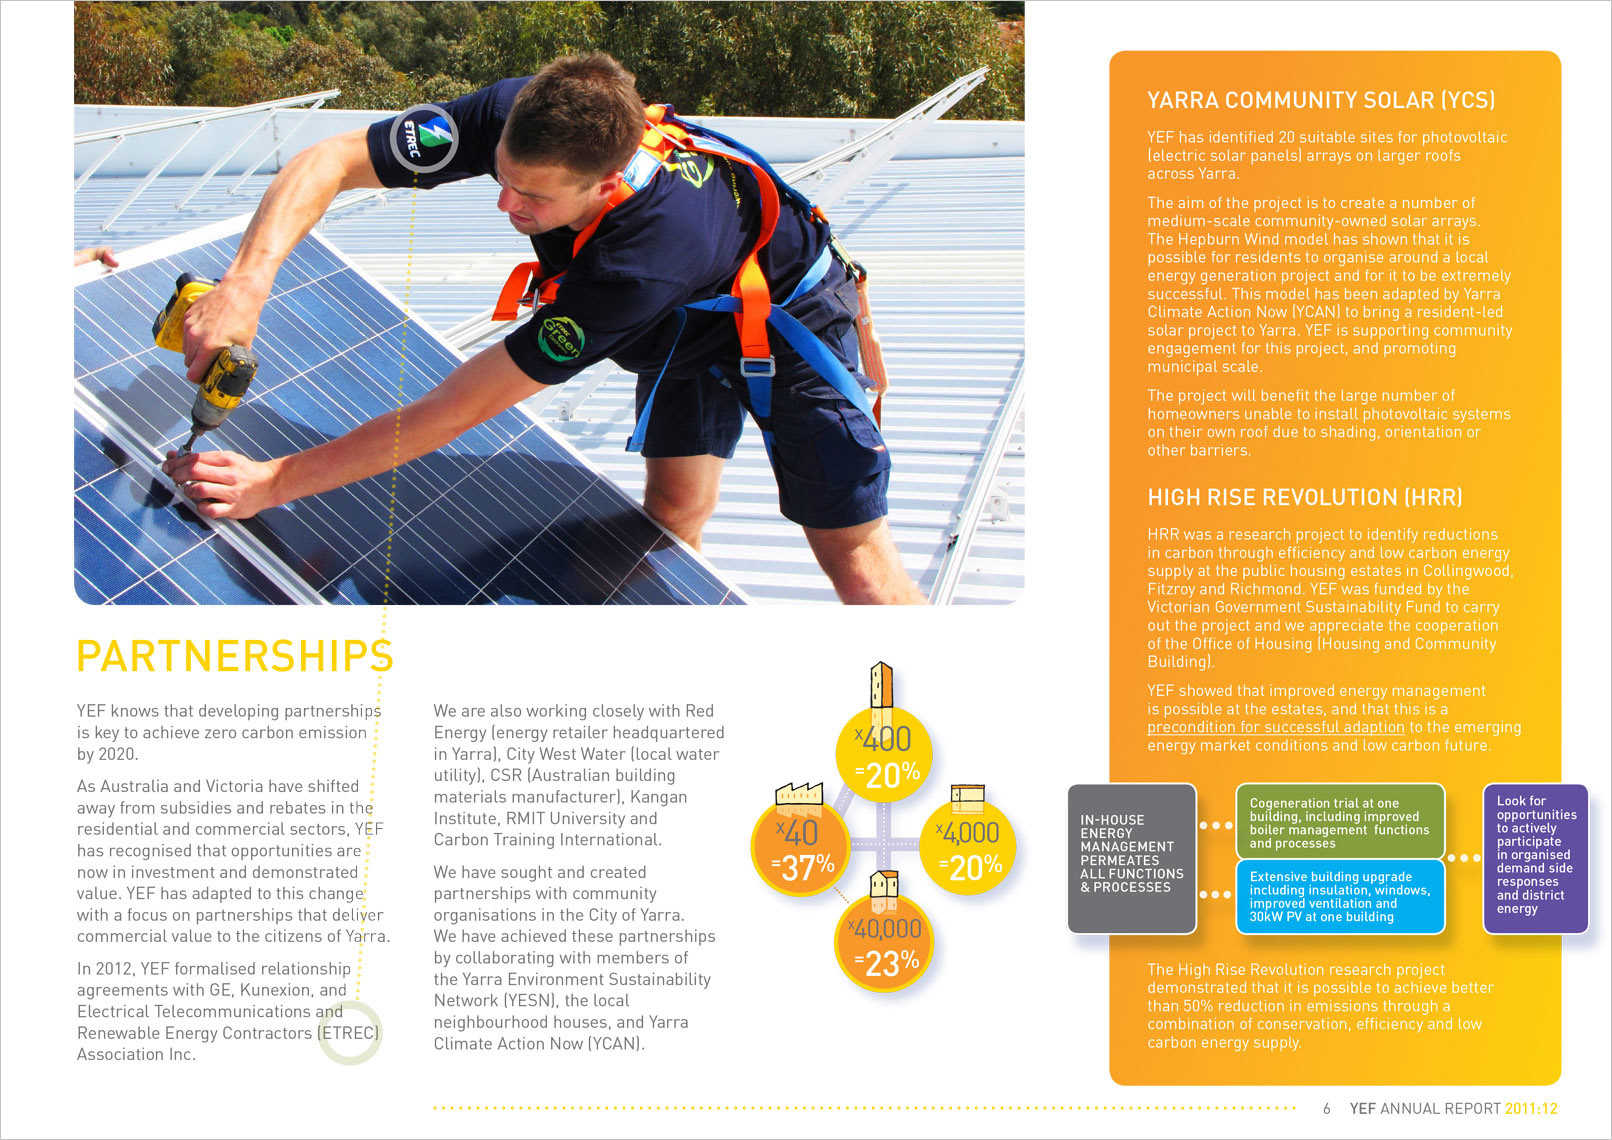 p7 Annual Report design by Shane Nagle. YEF Yarra Energy Foundation Annual Report 2012